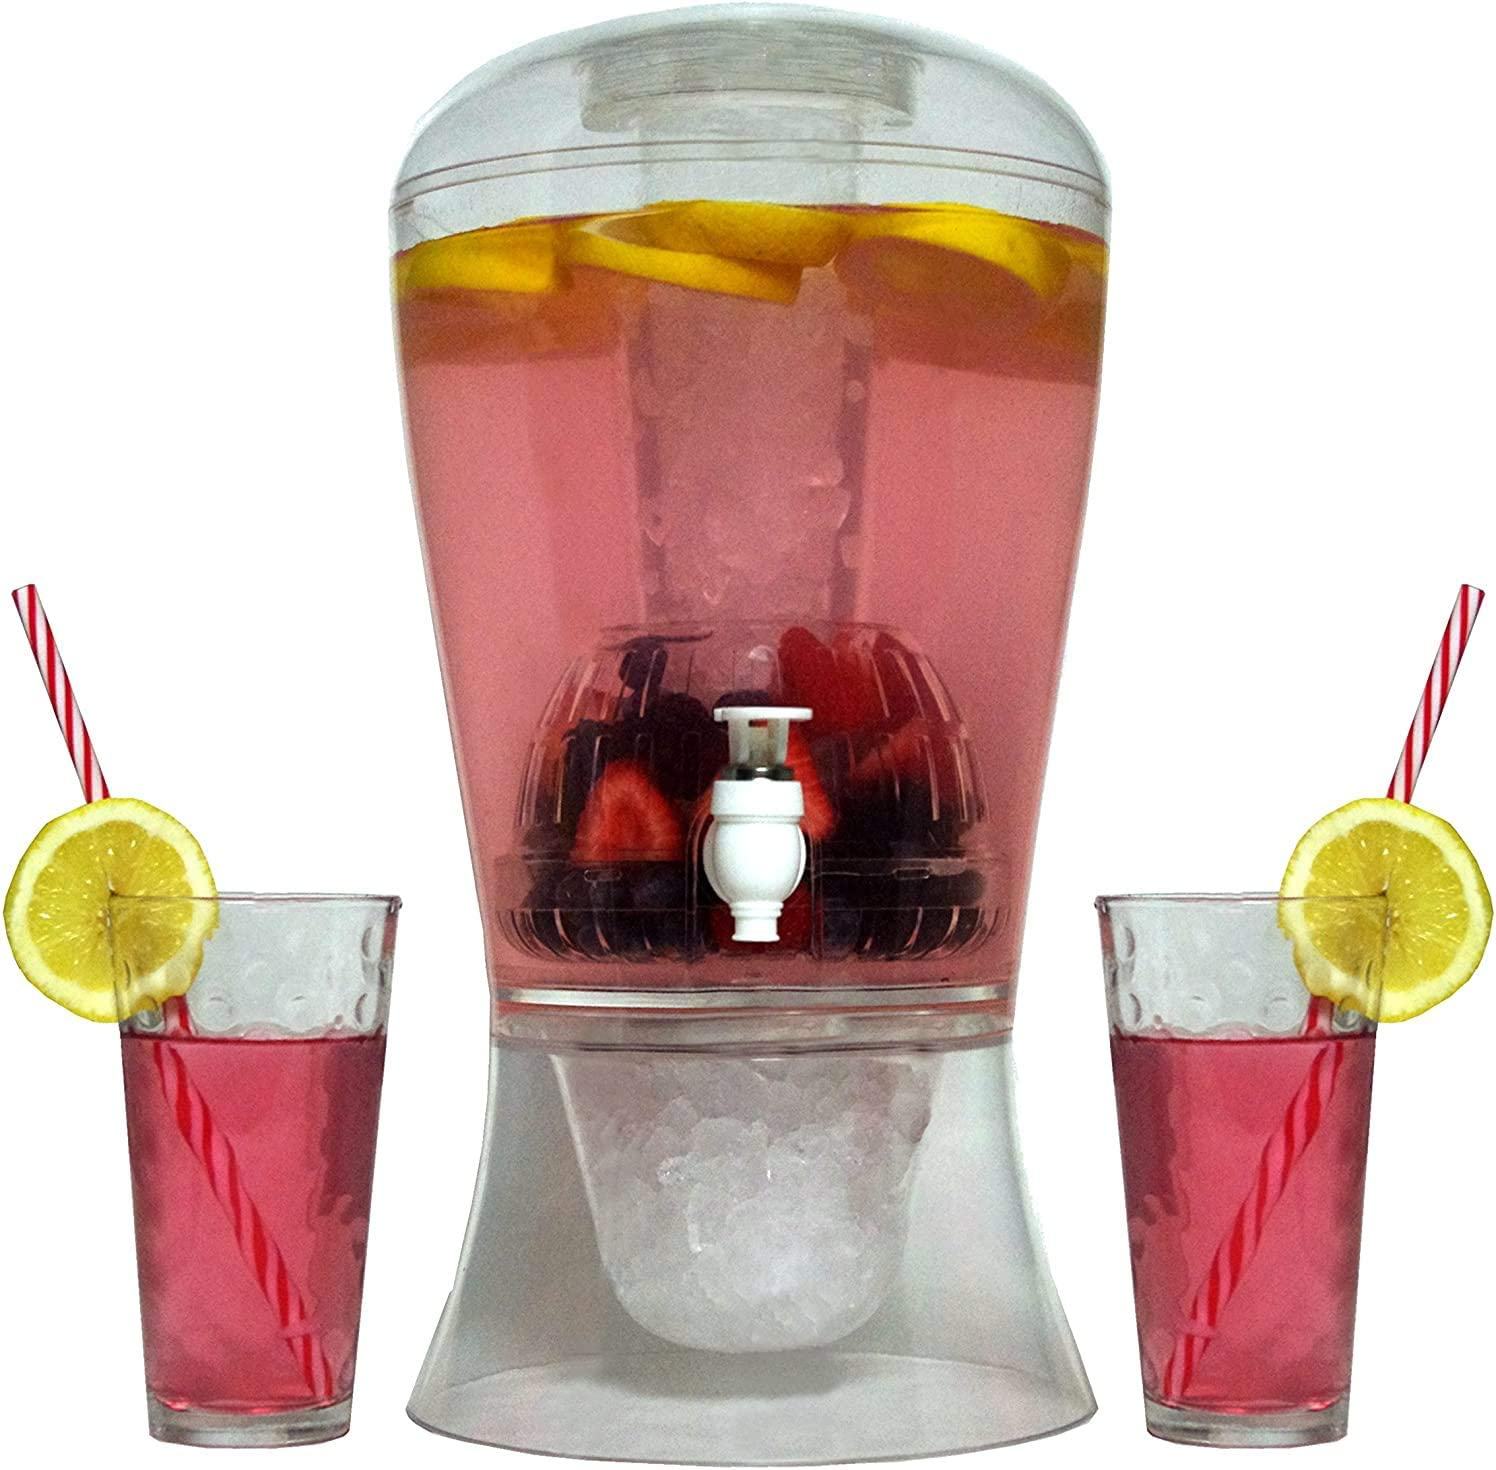 Large 2 Gallon Beverage Dispenser on Stand with Spout – Ice Base and Core Keep Juice and Drinks Cold – Shatterproof Acrylic Jug with Fruit and Tea Infuser(Non Cups)